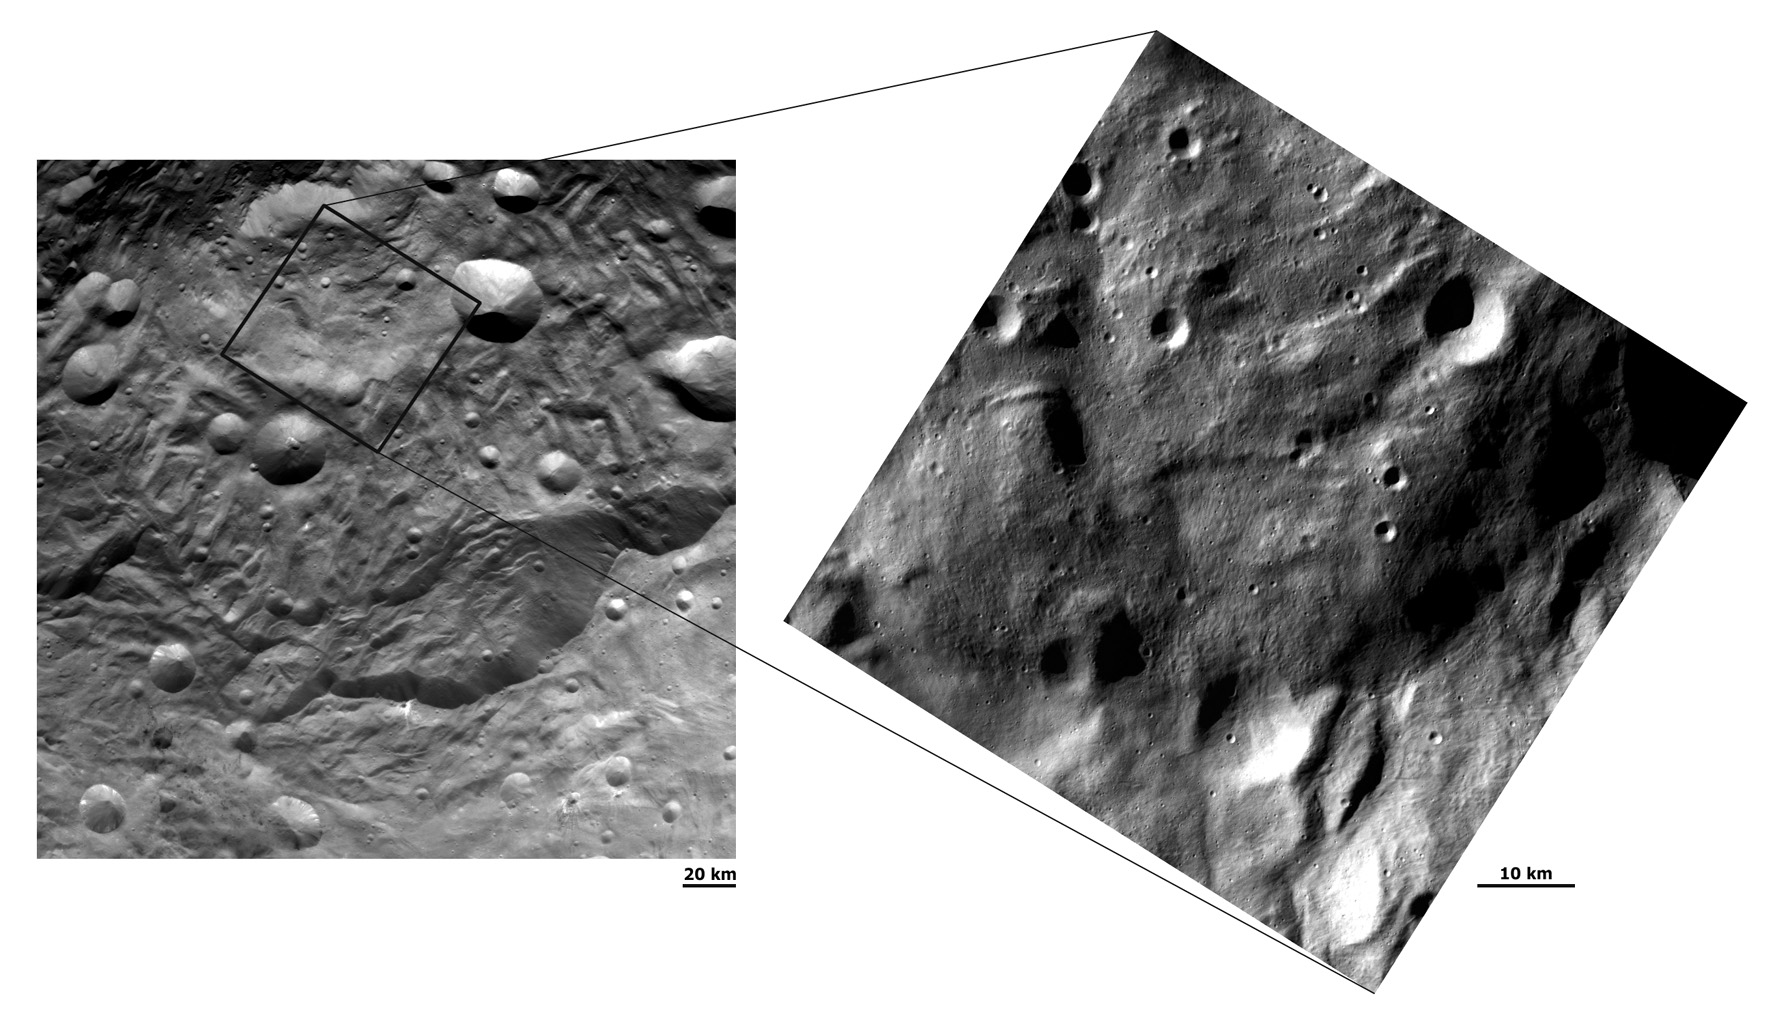 Two Different Resolution Images of Vesta's South Polar Region